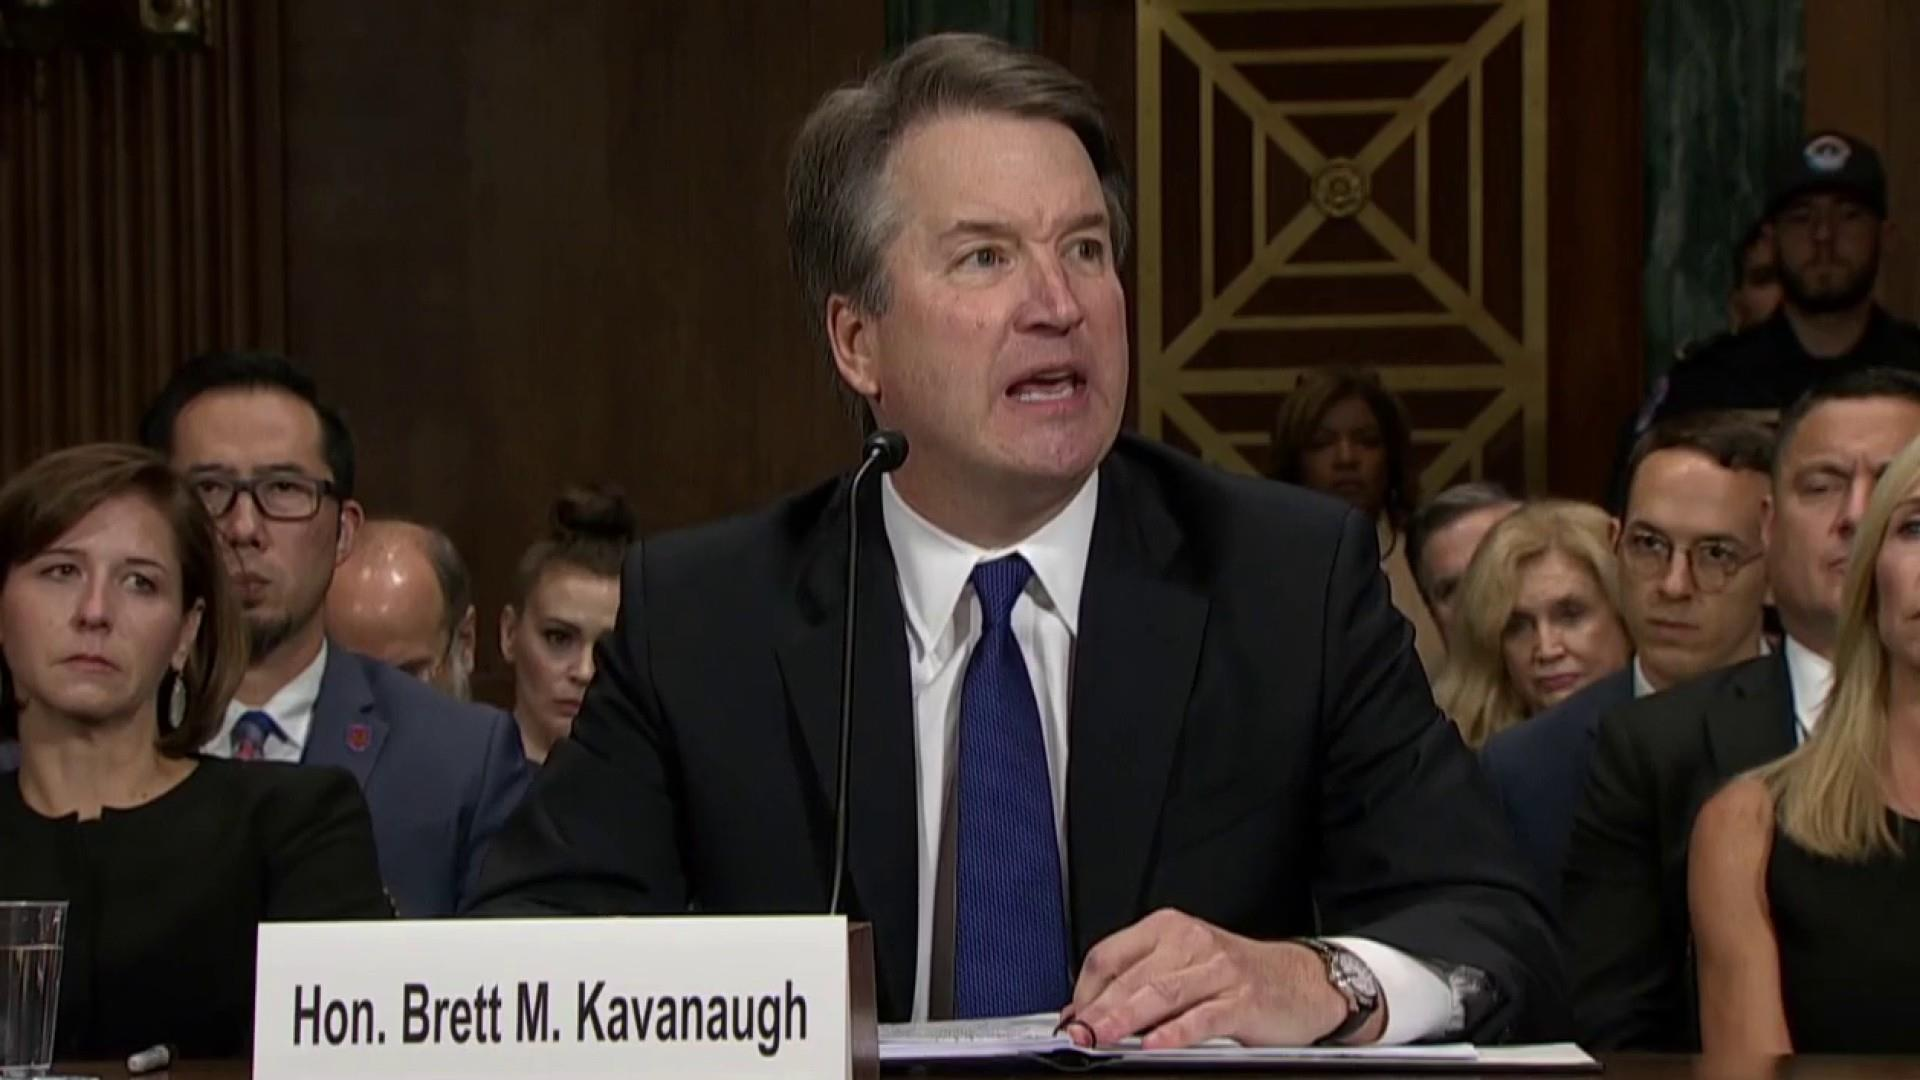 Kavanaugh's college friends say he lied under oath about drinking